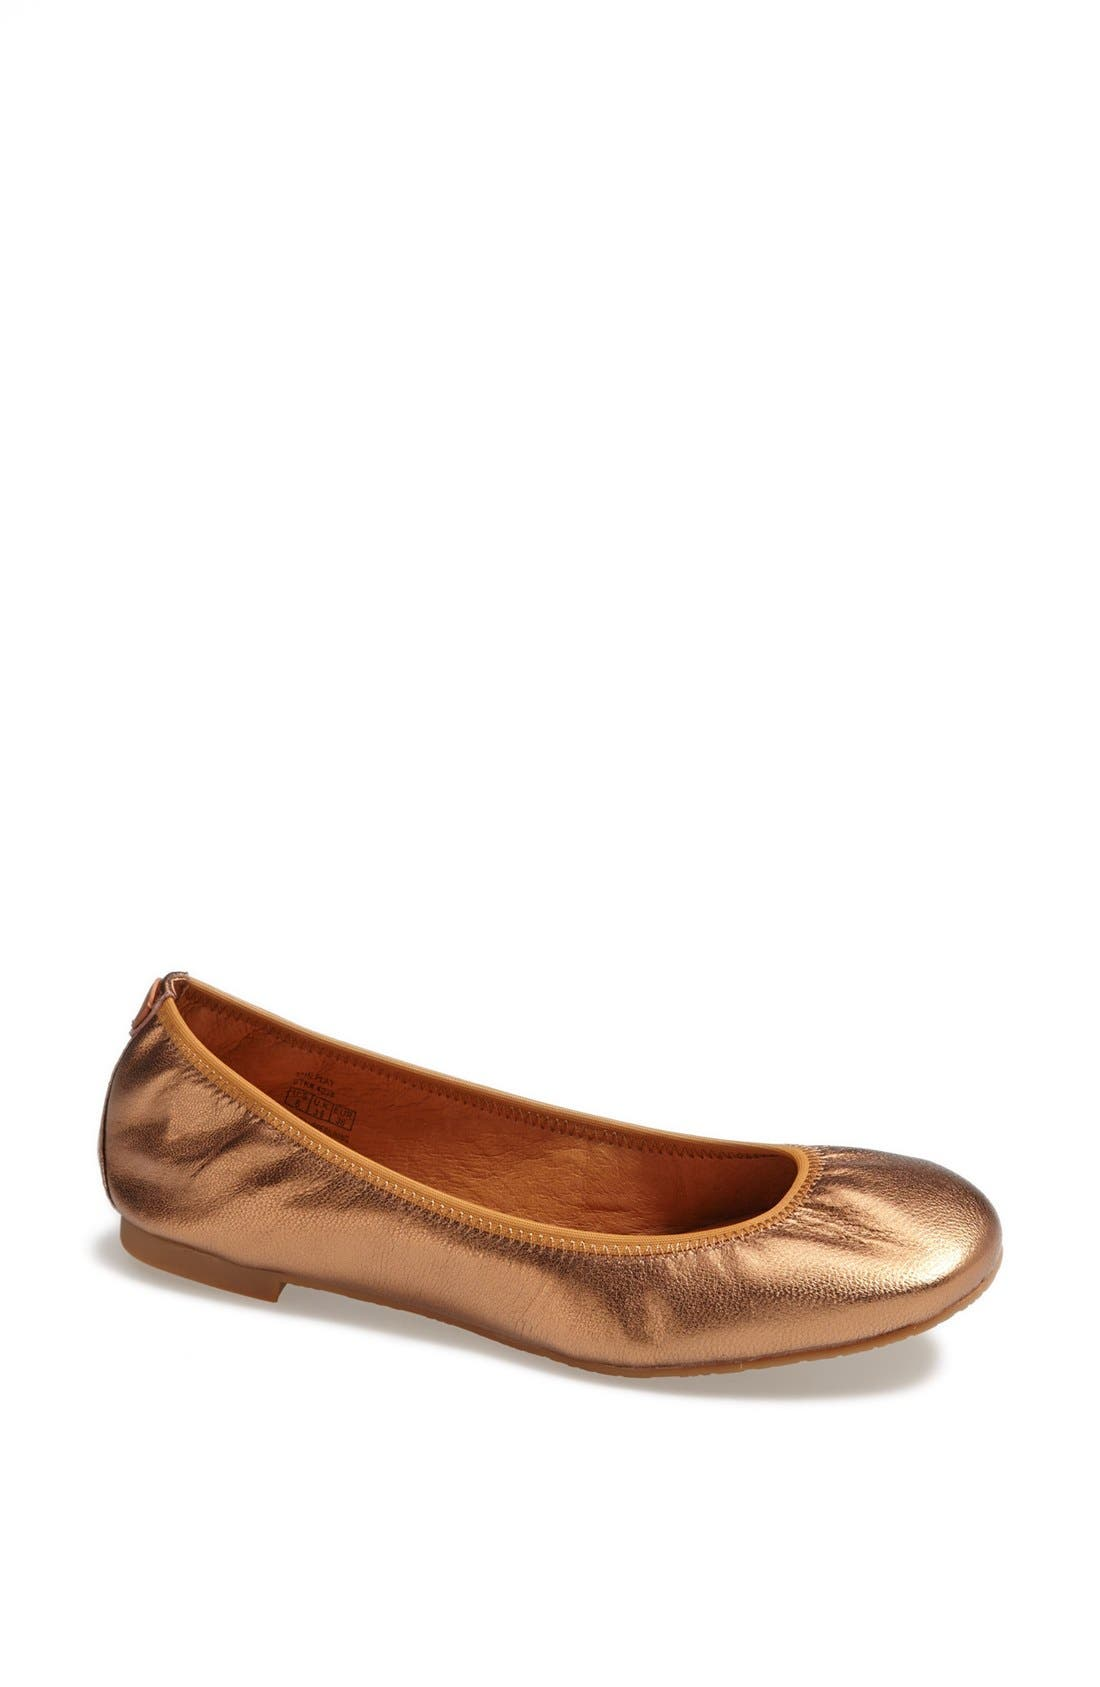 Alternate Image 1 Selected - Juil 'The Flat' Earthing Metallic Leather Ballet Flat